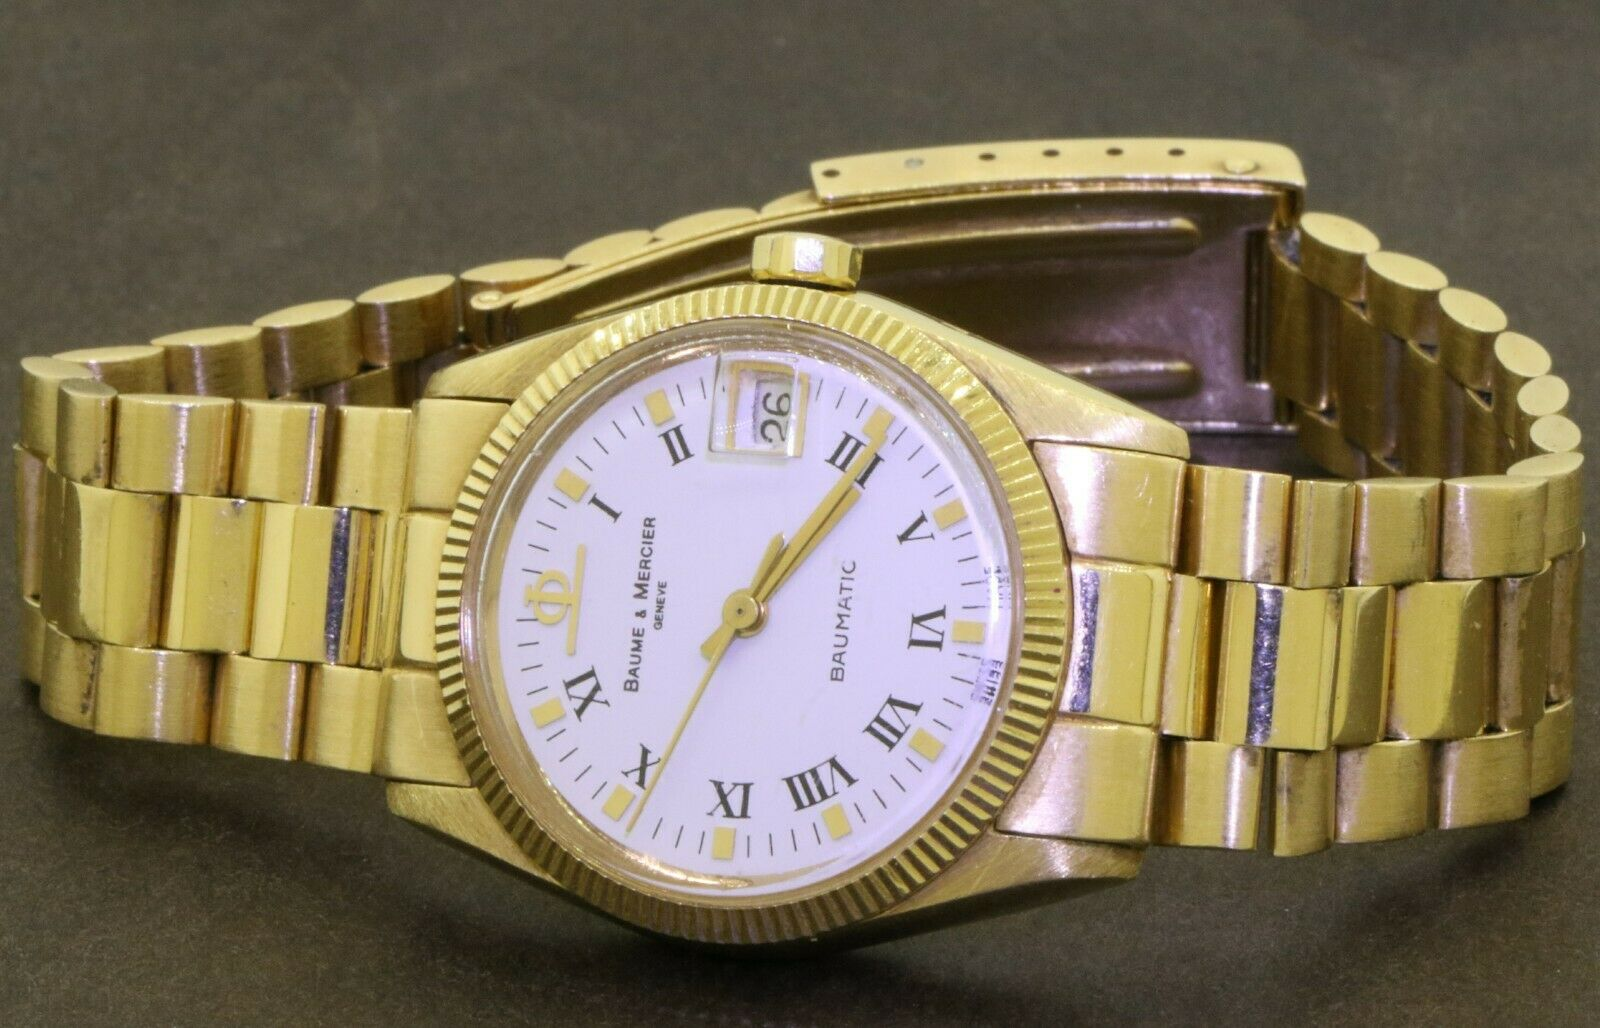 Baume & Mercier Baumatic heavy 18k yellow gold 30mm automatic watch with date - watch picture 1